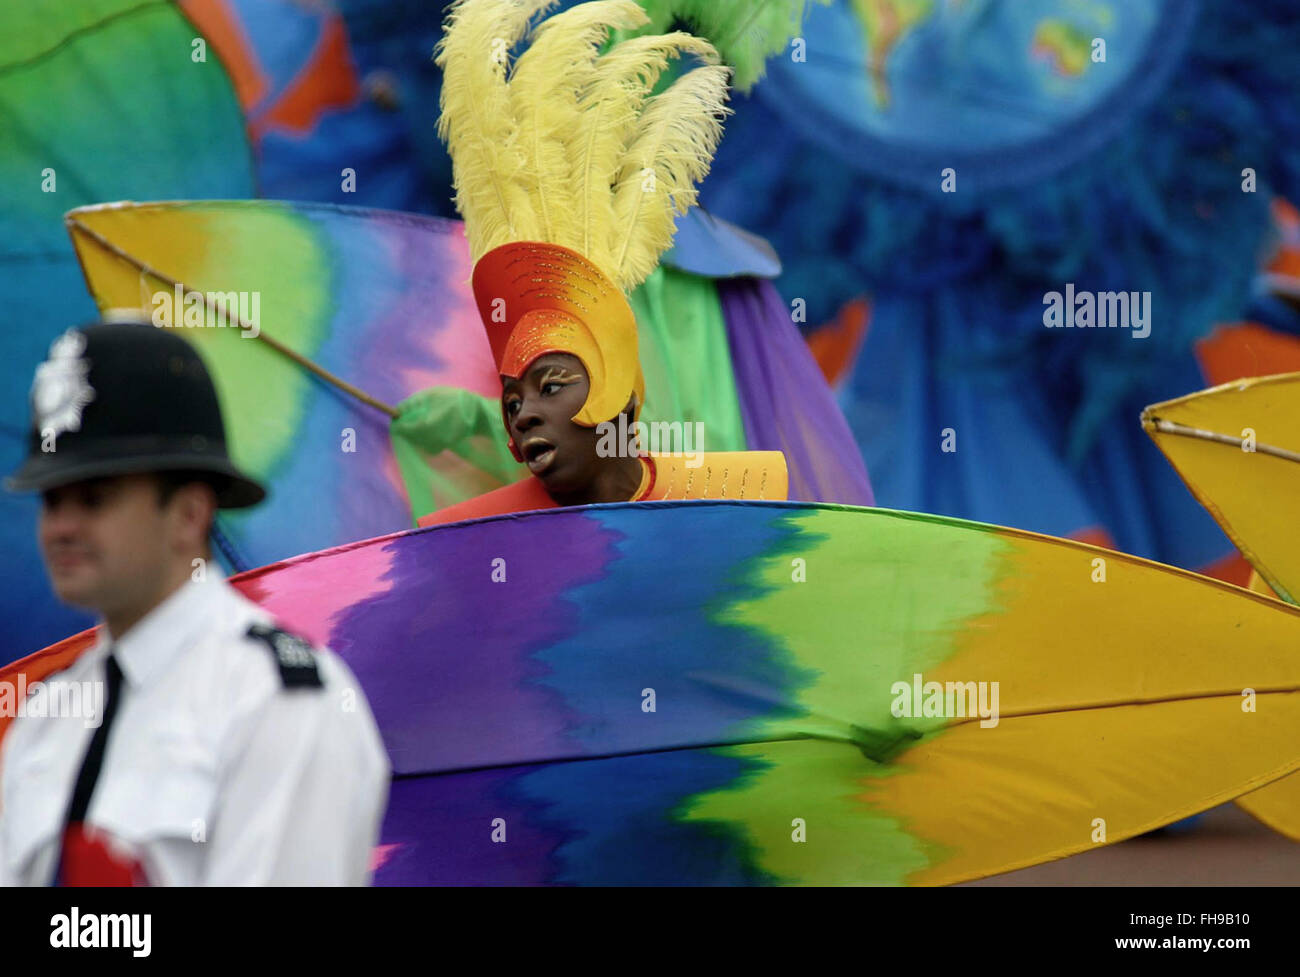 A performer dancing outside Buckingham Palace in a special pageant marking Queen Elizabeth II's Golden Jubilee - Stock Image